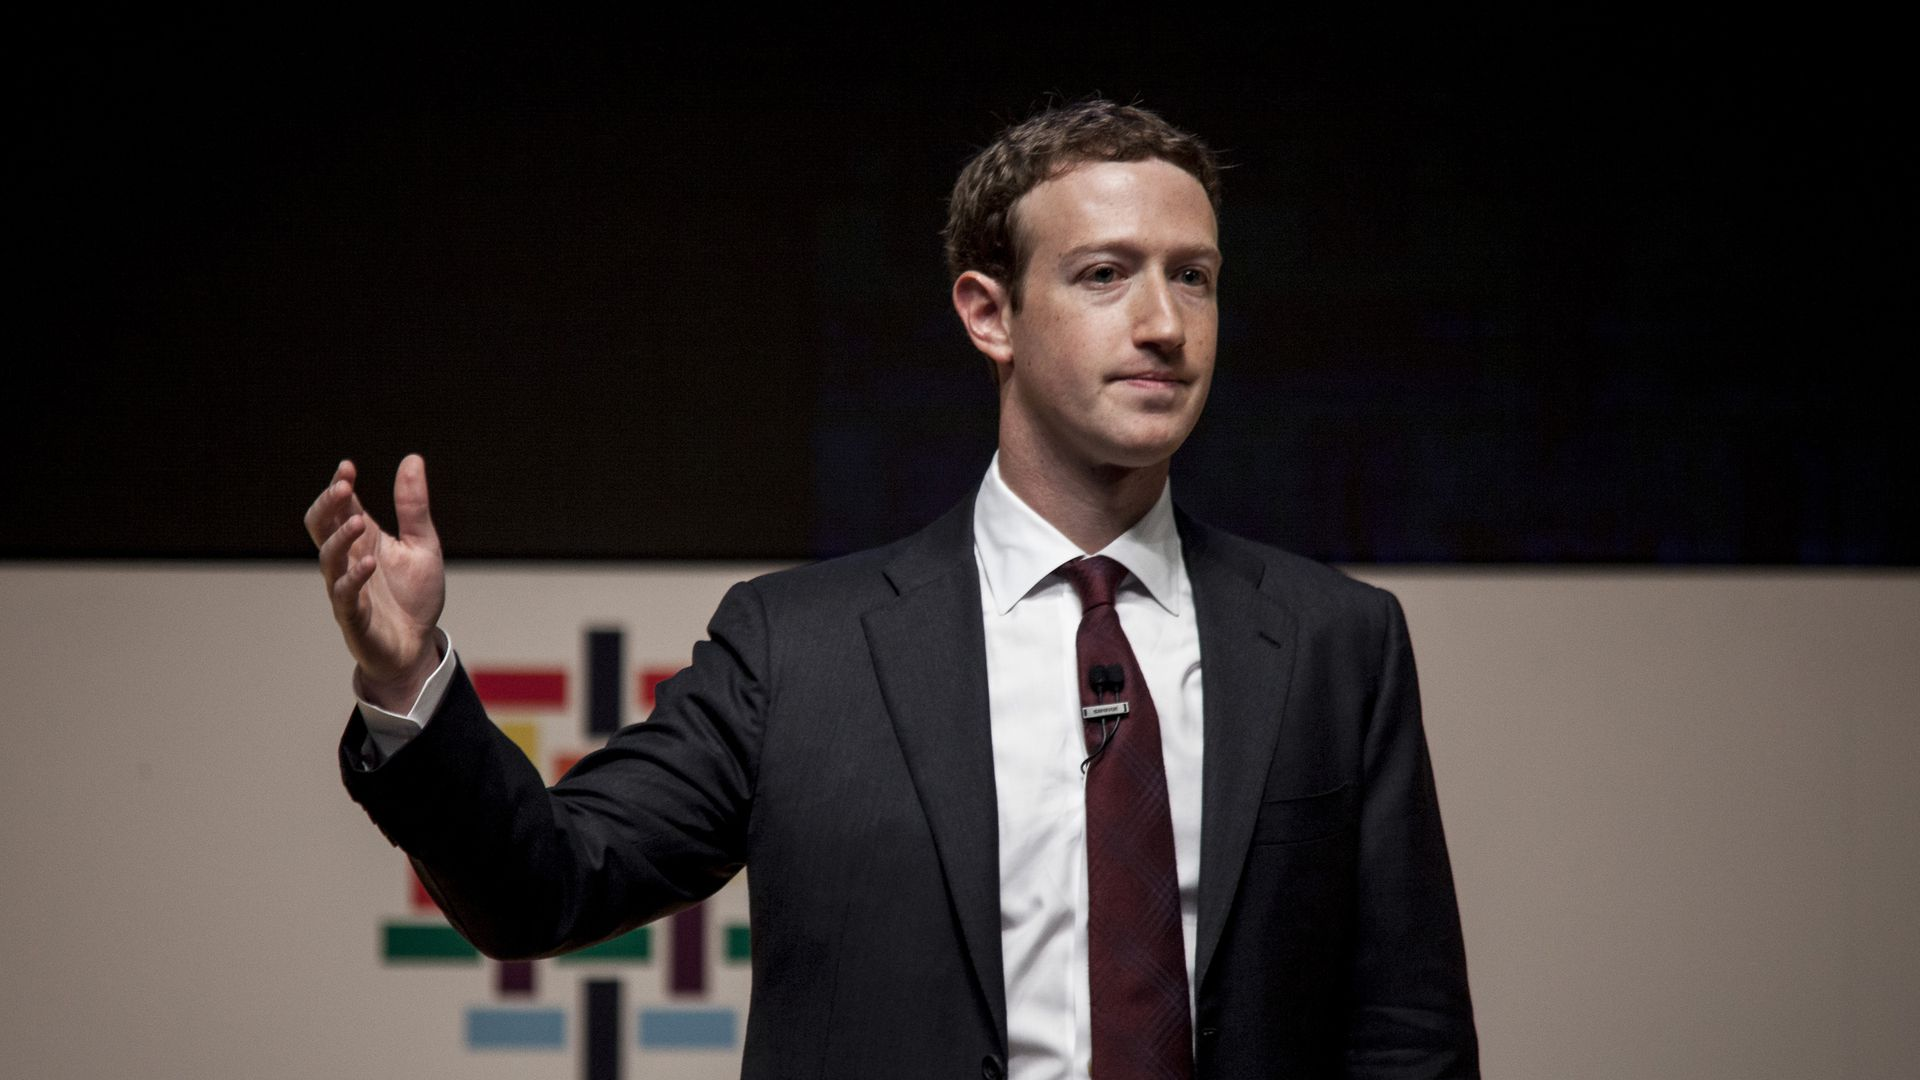 Facebook CEO Mark Zuckerberg in a suit